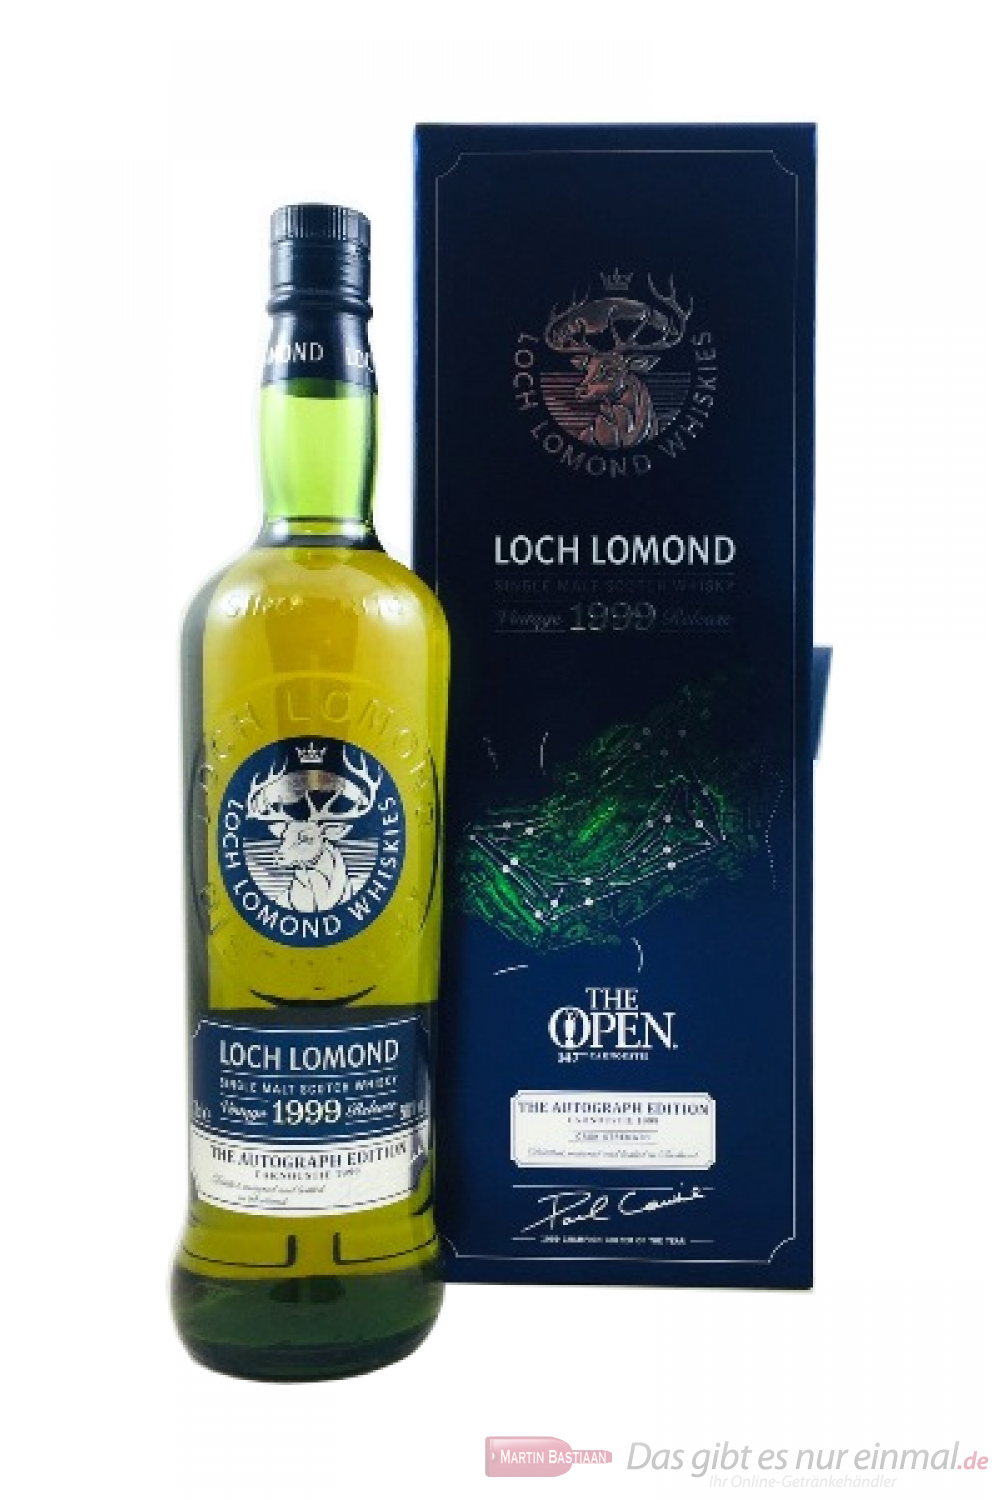 Loch Lomond The Autograph Edition 1999